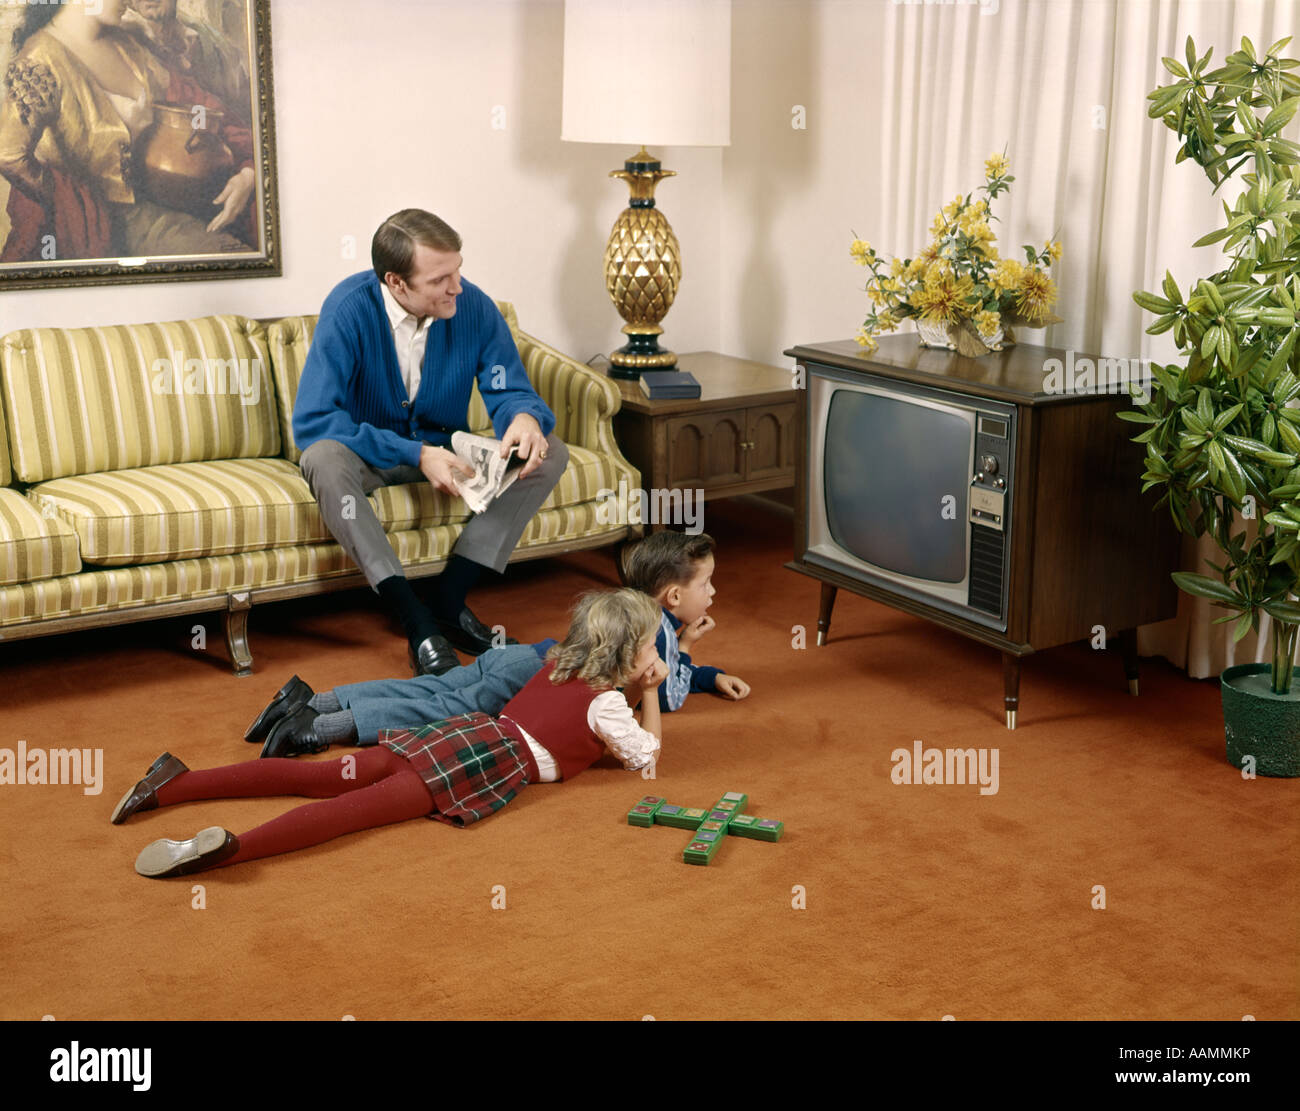 1960s FATHER SITTING ON LIVING ROOM COUCH BROTHER AND SISTER ON FLOOR WATCH  TELEVISION FAMILY MAN BOY GIRL INDOOR